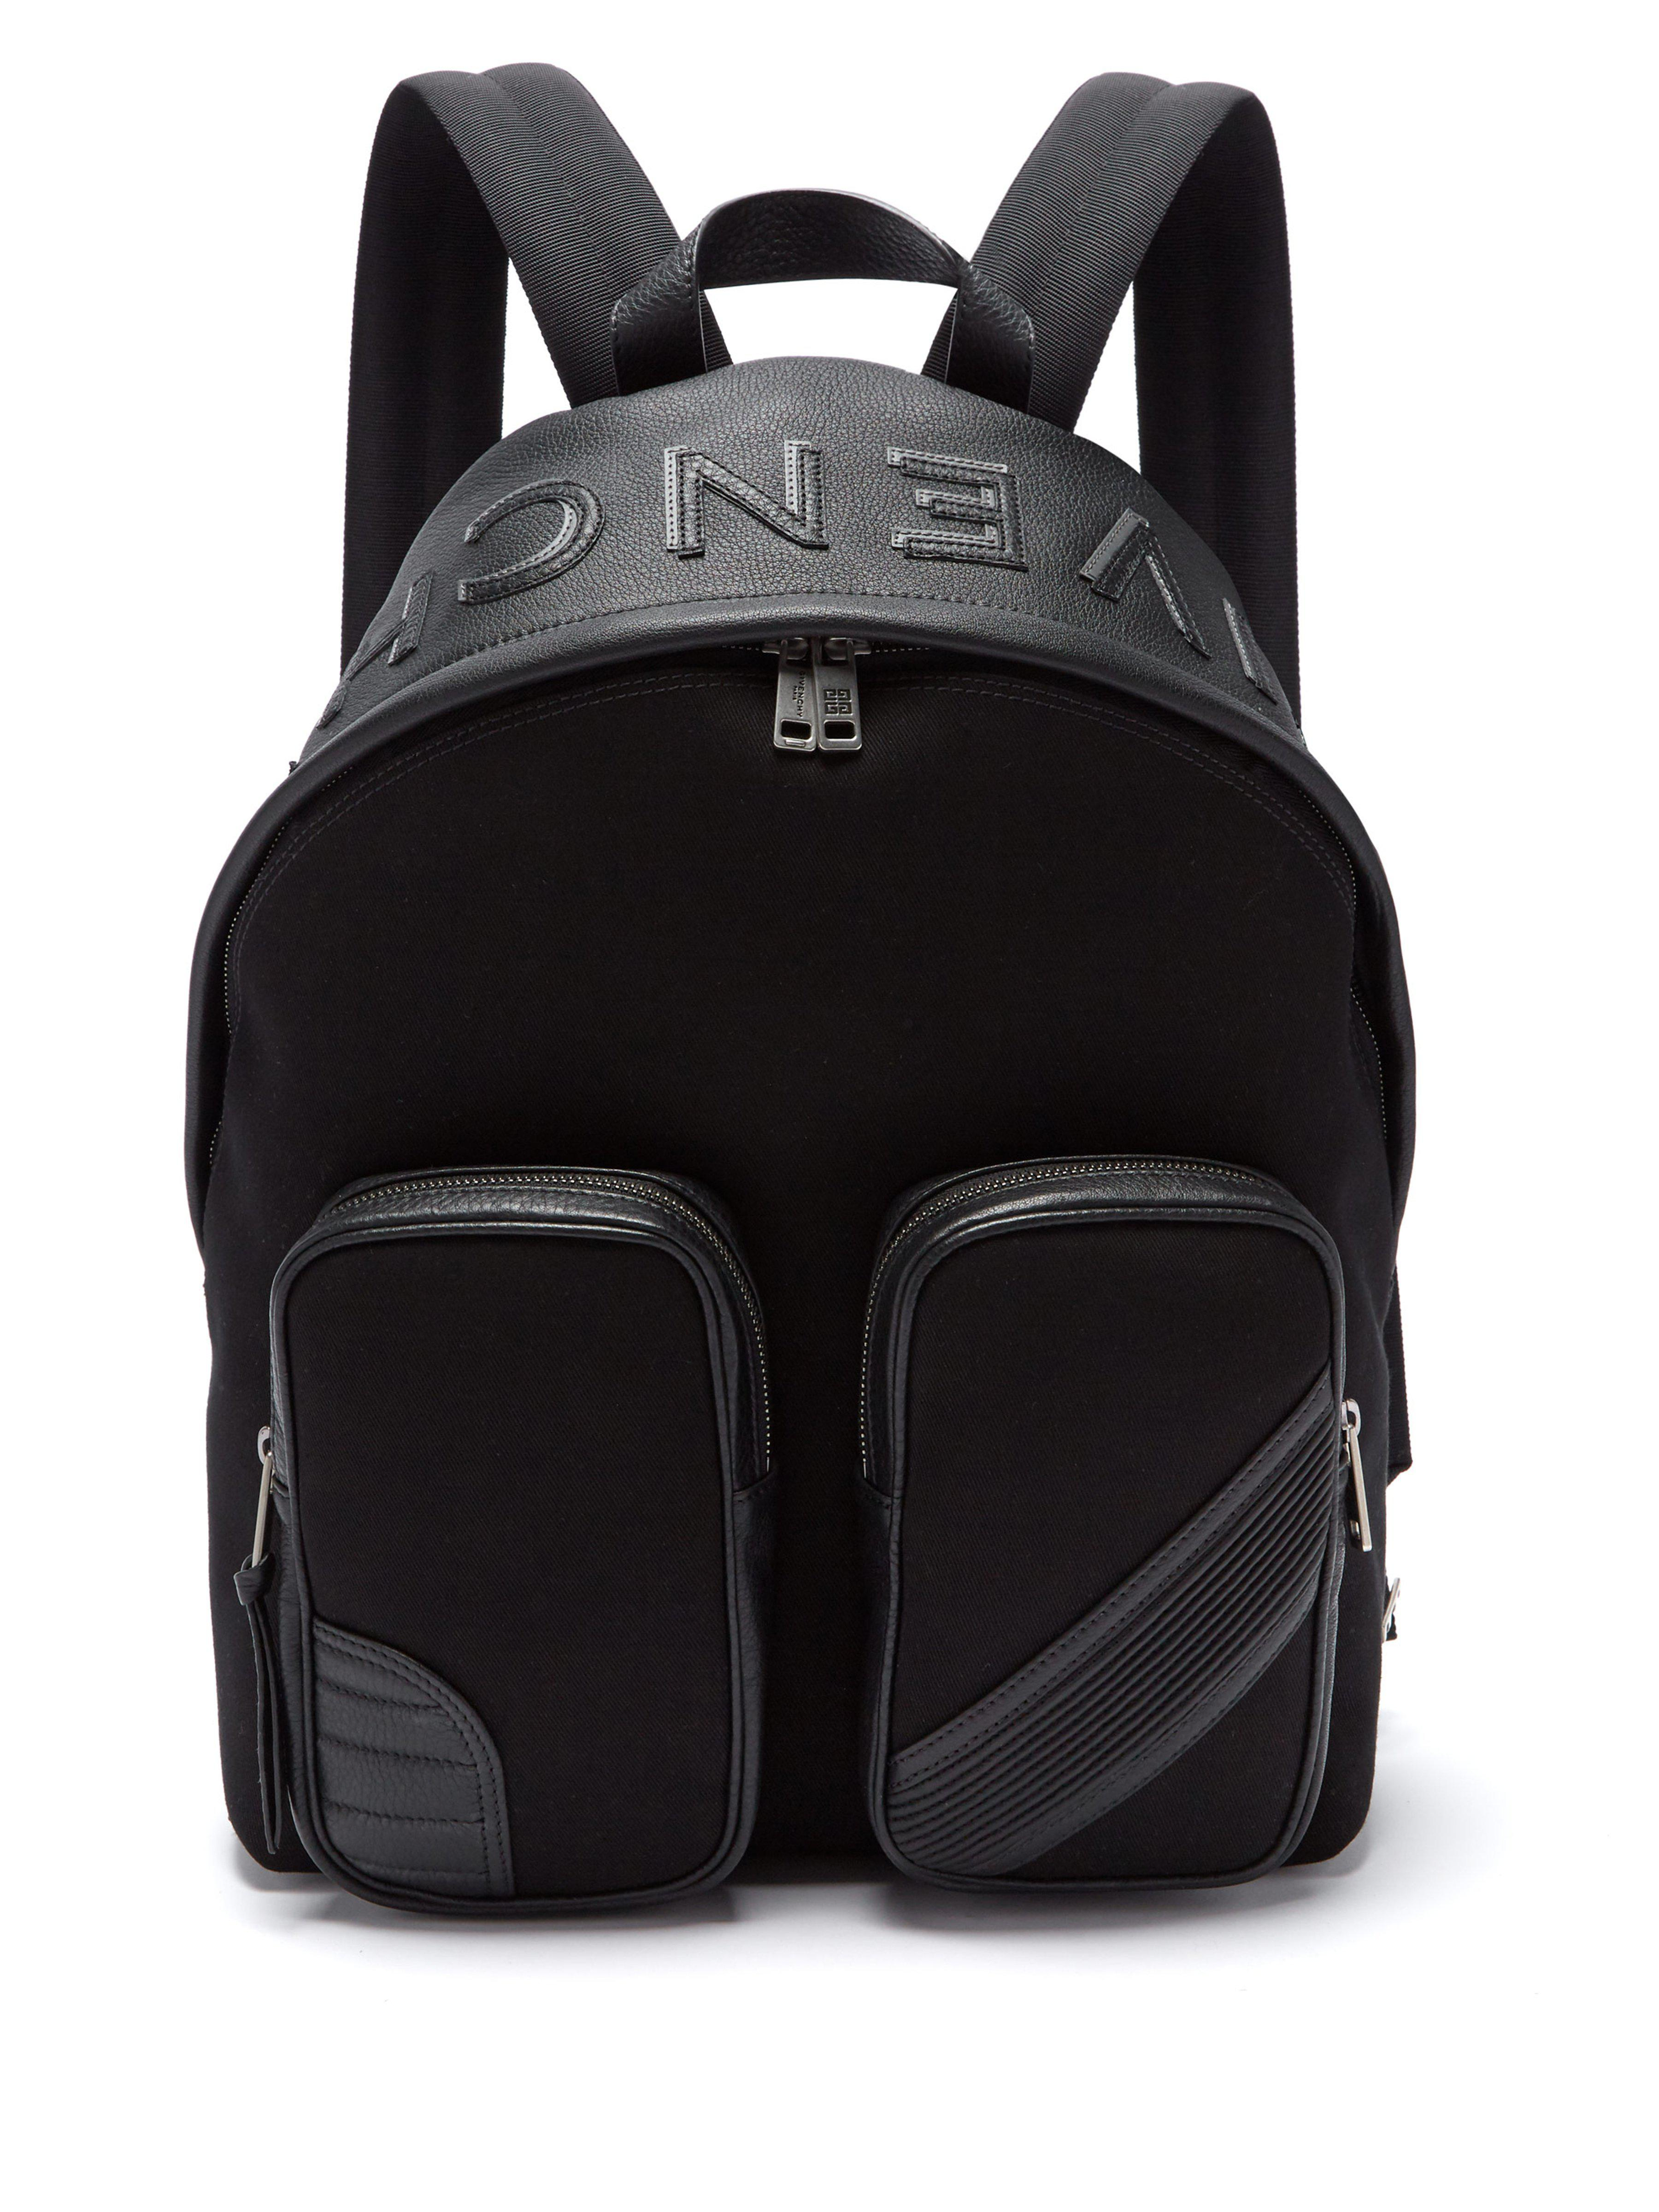 0ef810d997 Givenchy - Black Mc3 Canvas And Leather Backpack for Men - Lyst. View  fullscreen